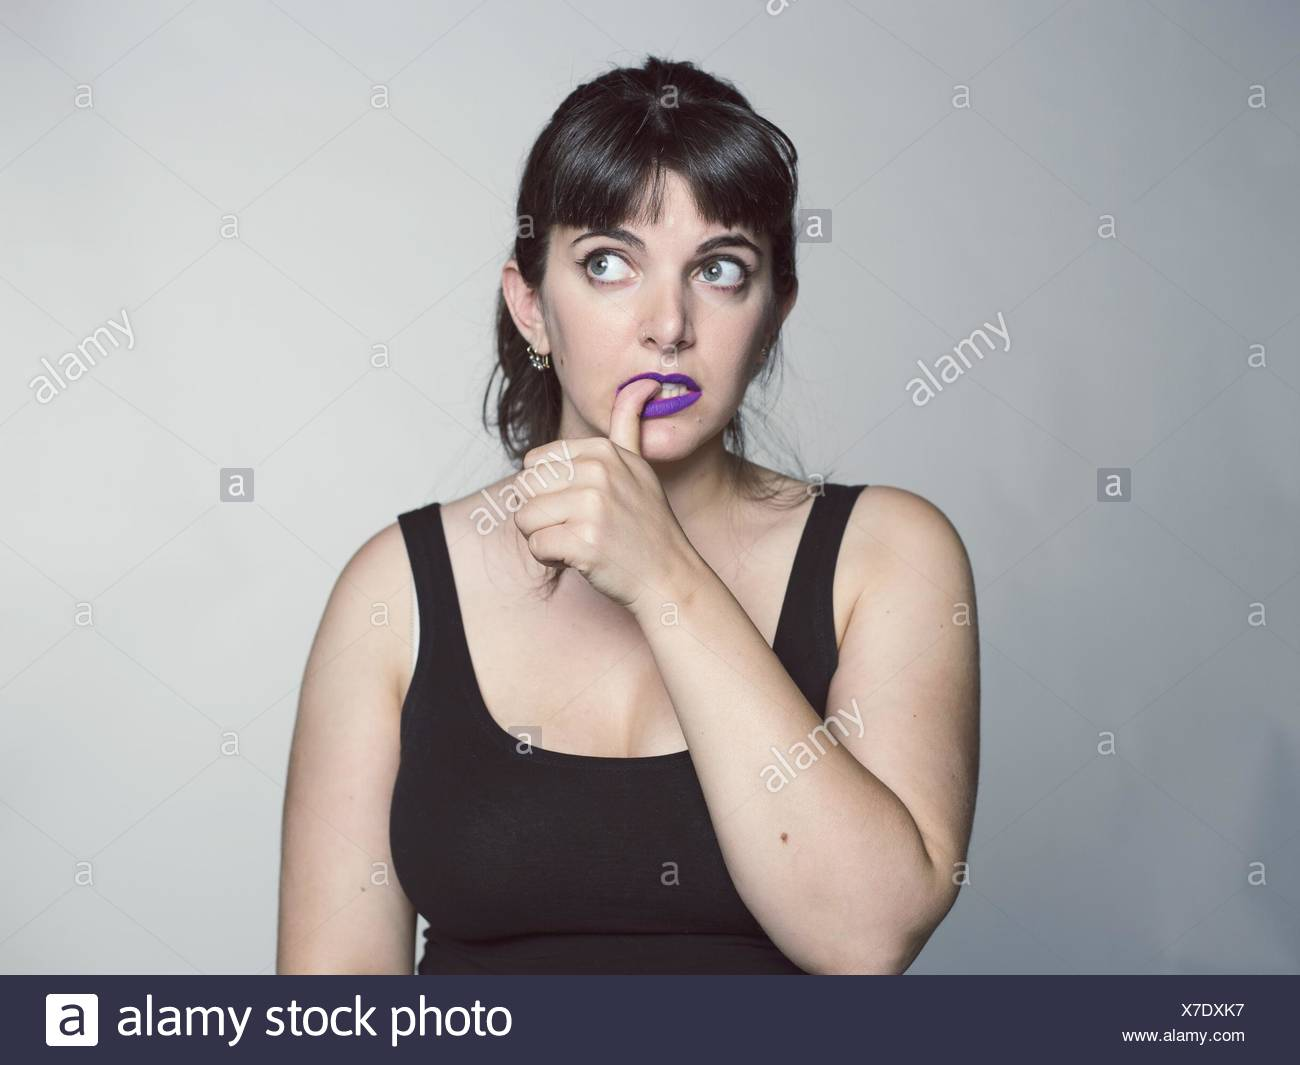 Studio Shot Of Young Woman Biting Her Nail - Stock Image